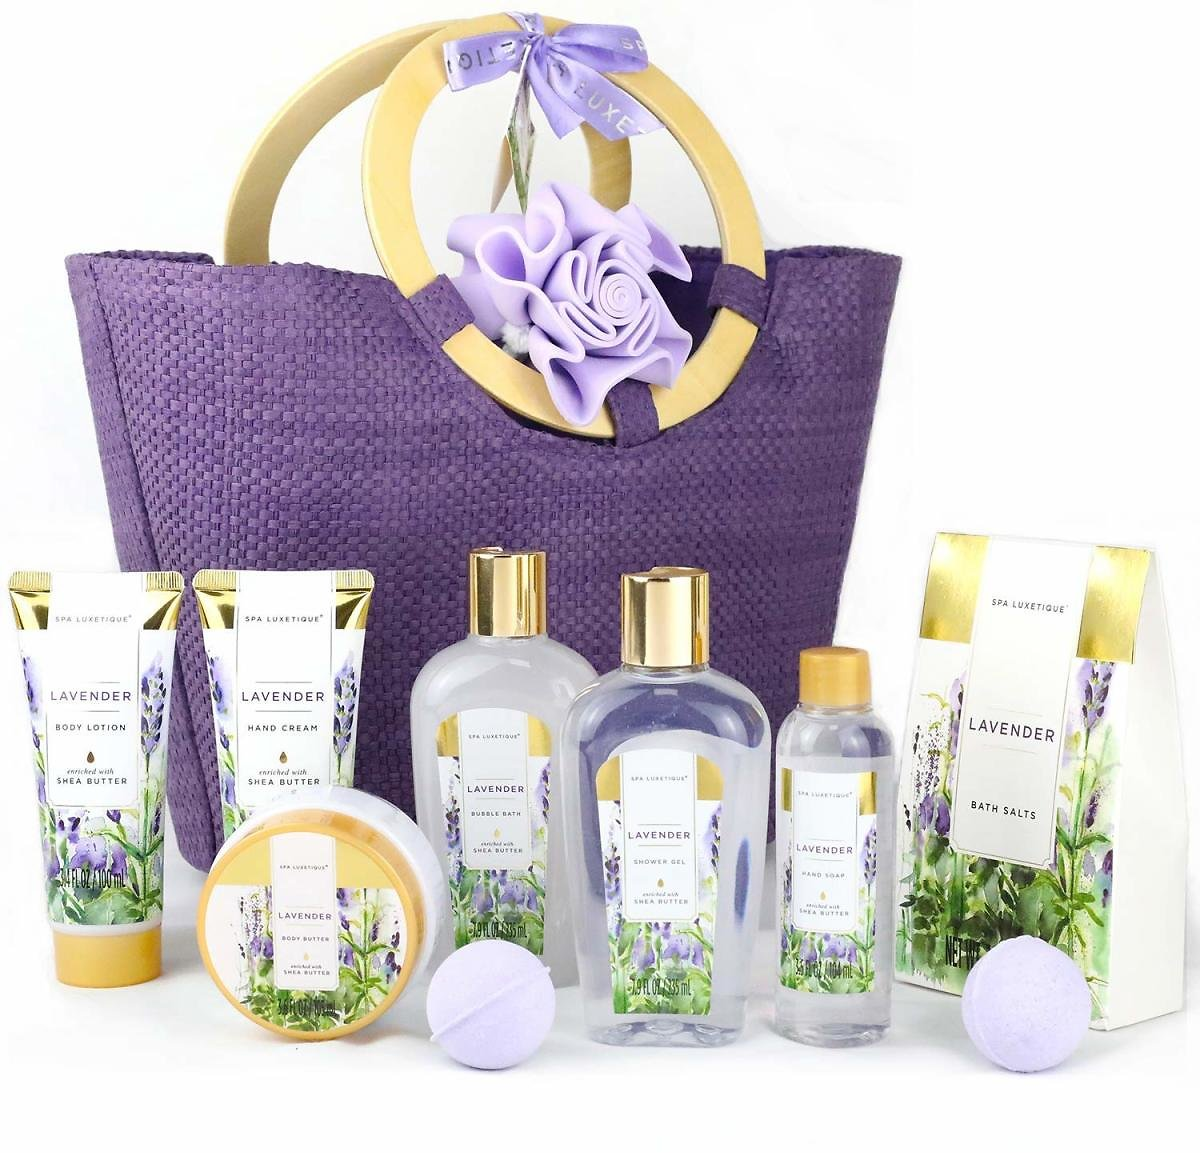 Women's Special: Spa Luxetique Lavender Spa Gift Basket - Luxury 10 Pcs Gift Set